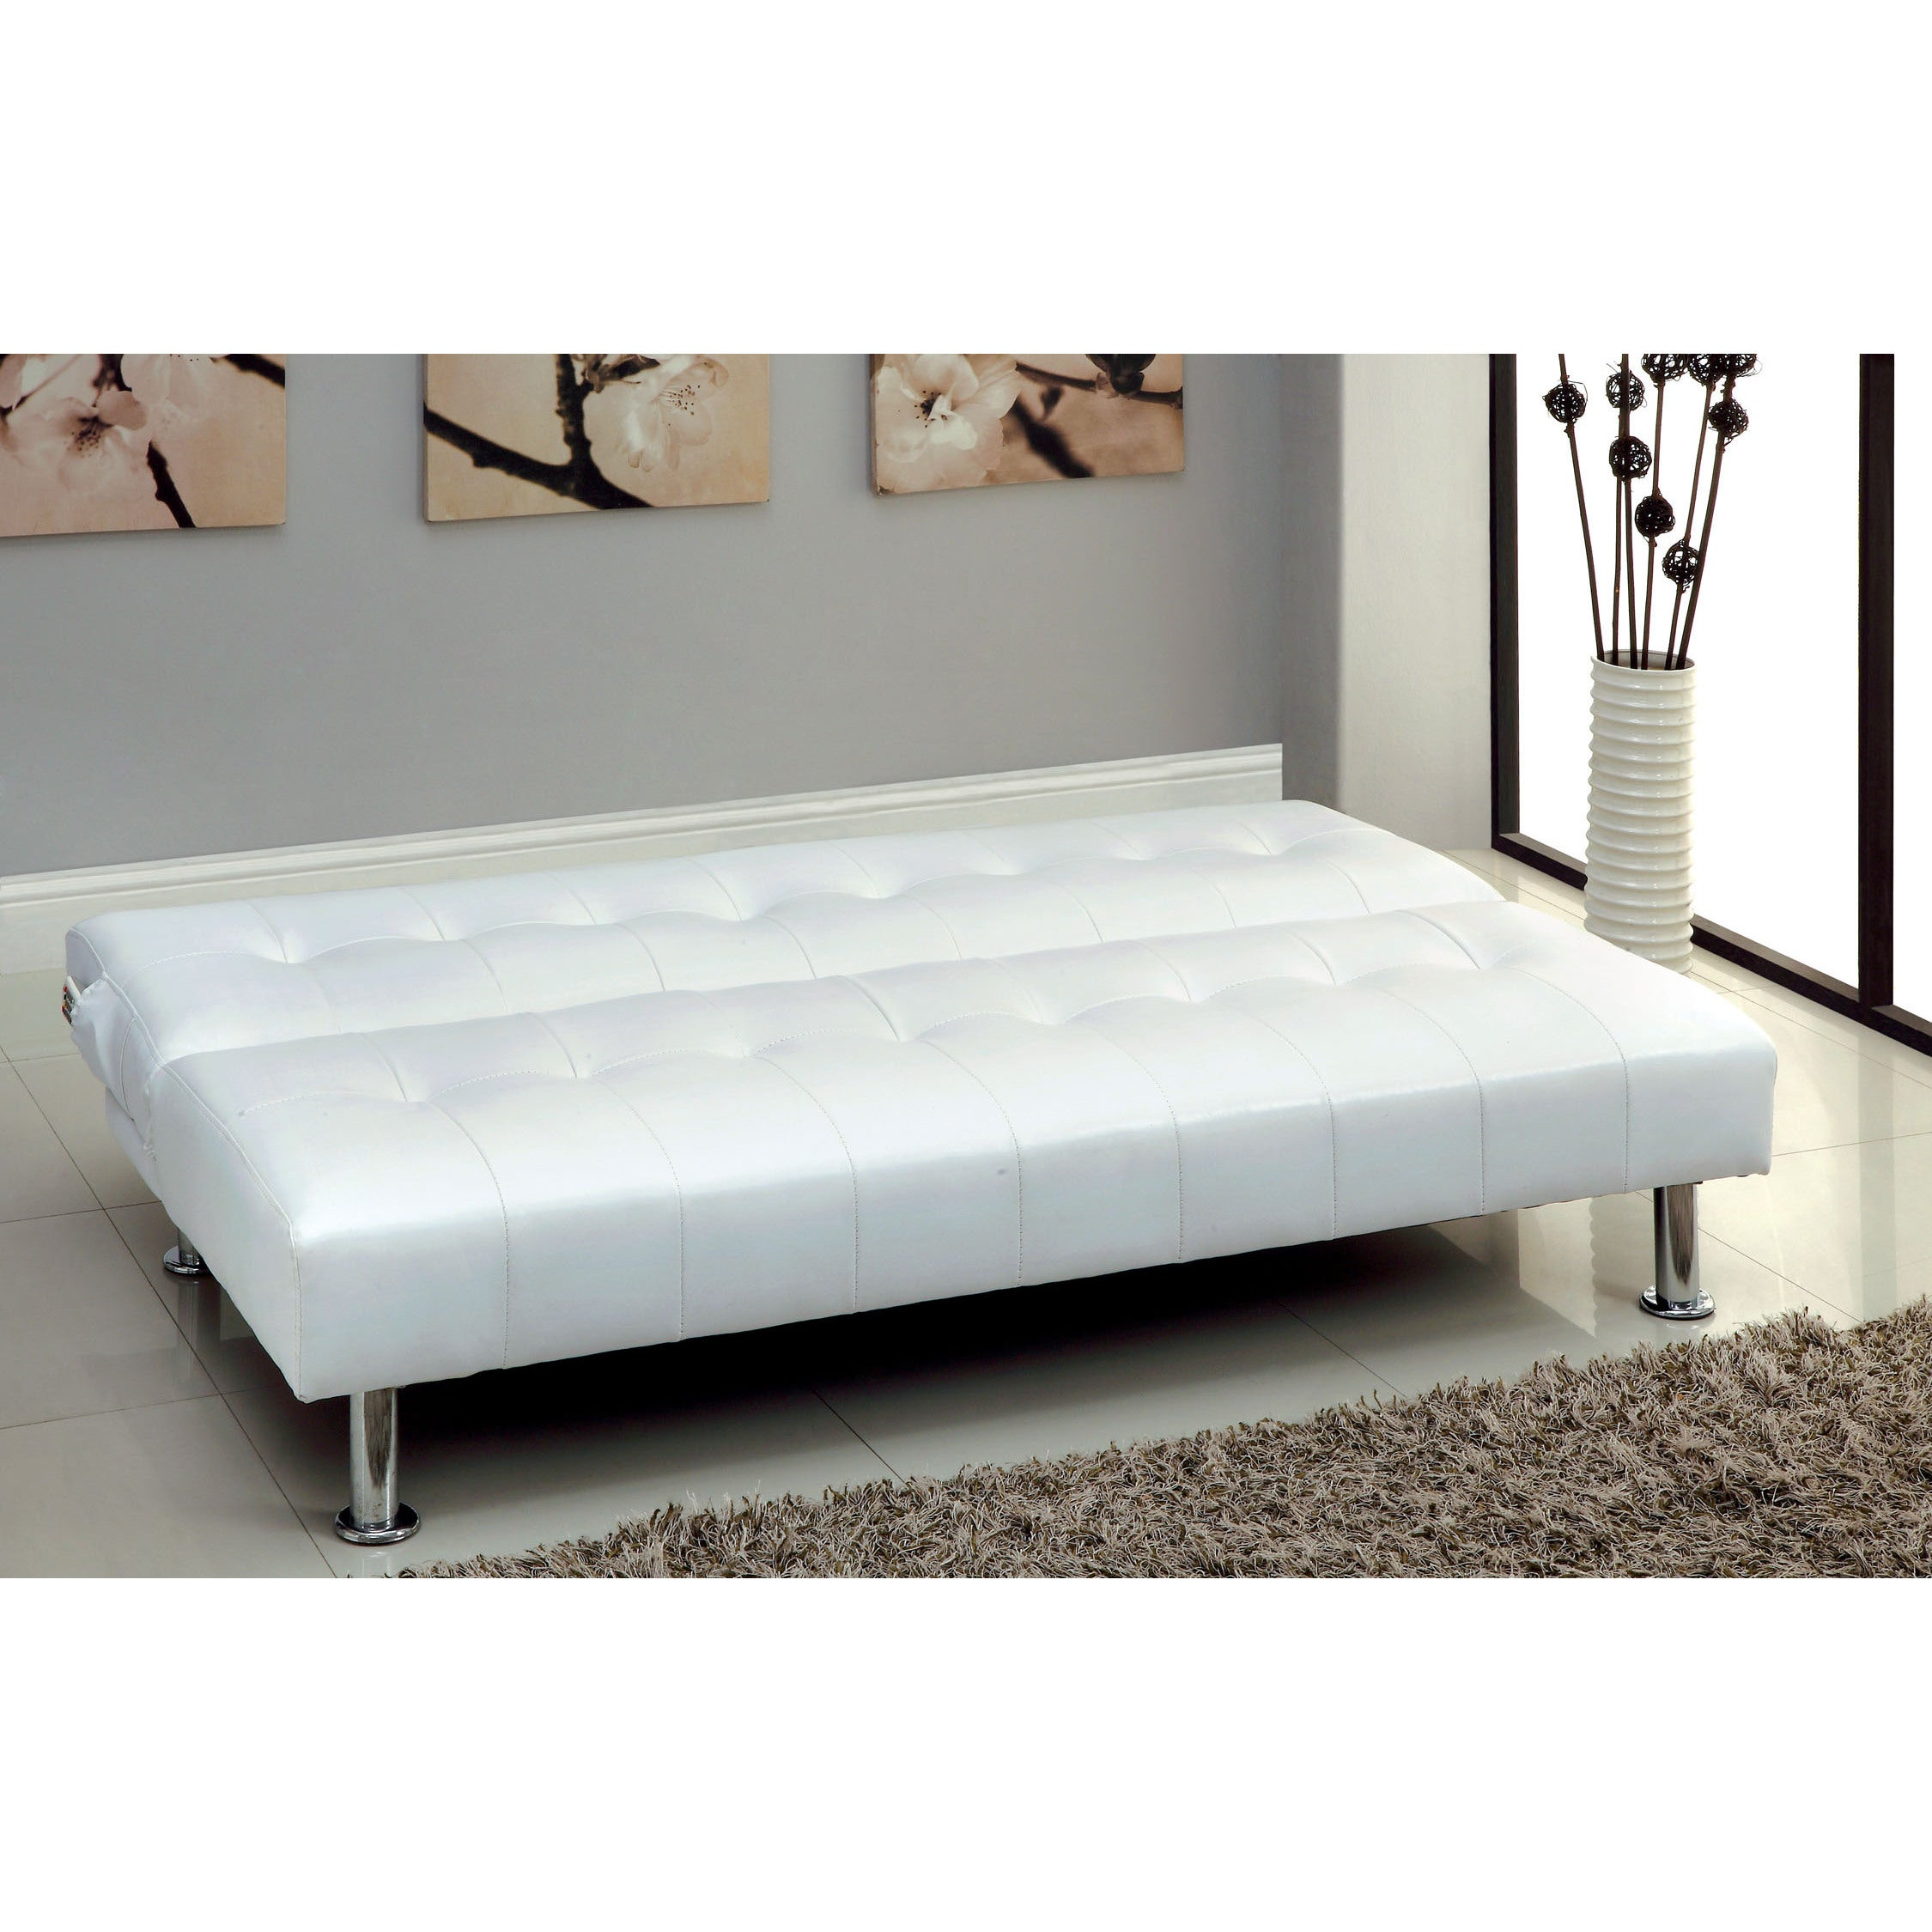 furniture of america modern tufted futon sofabed with storage pockets   free shipping today   overstock     15150509 furniture of america modern tufted futon sofabed with storage      rh   overstock